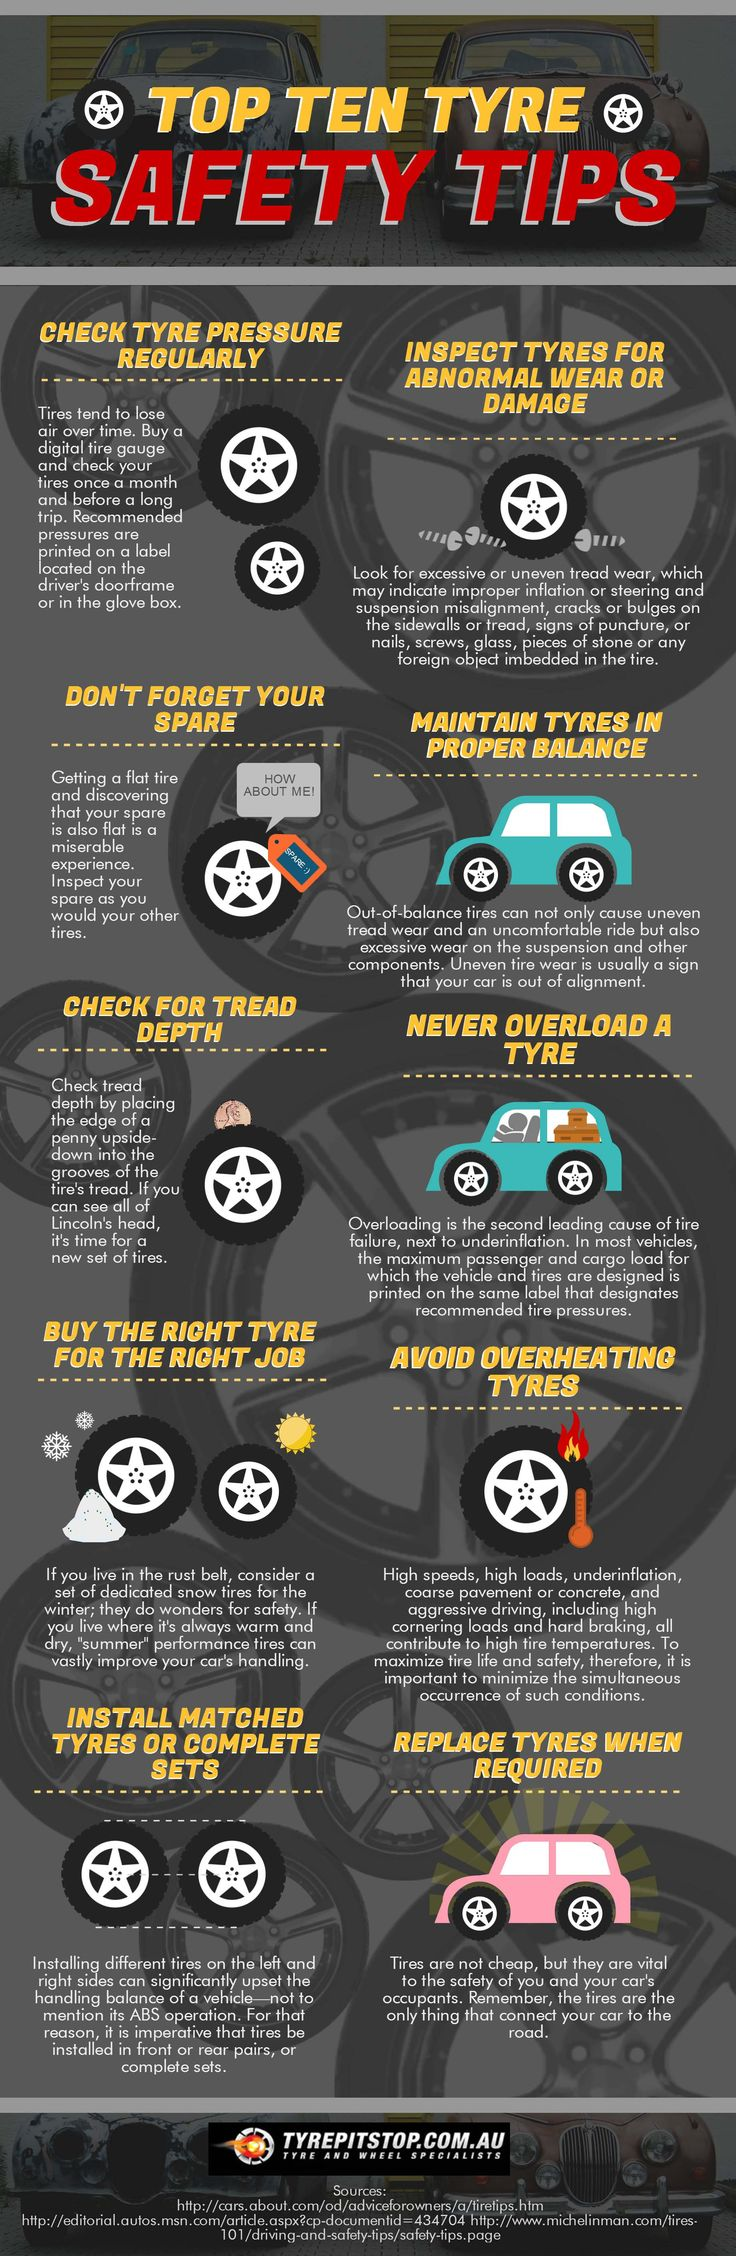 50 best drivers ed images on Pinterest | Cars, Driving tips and ...